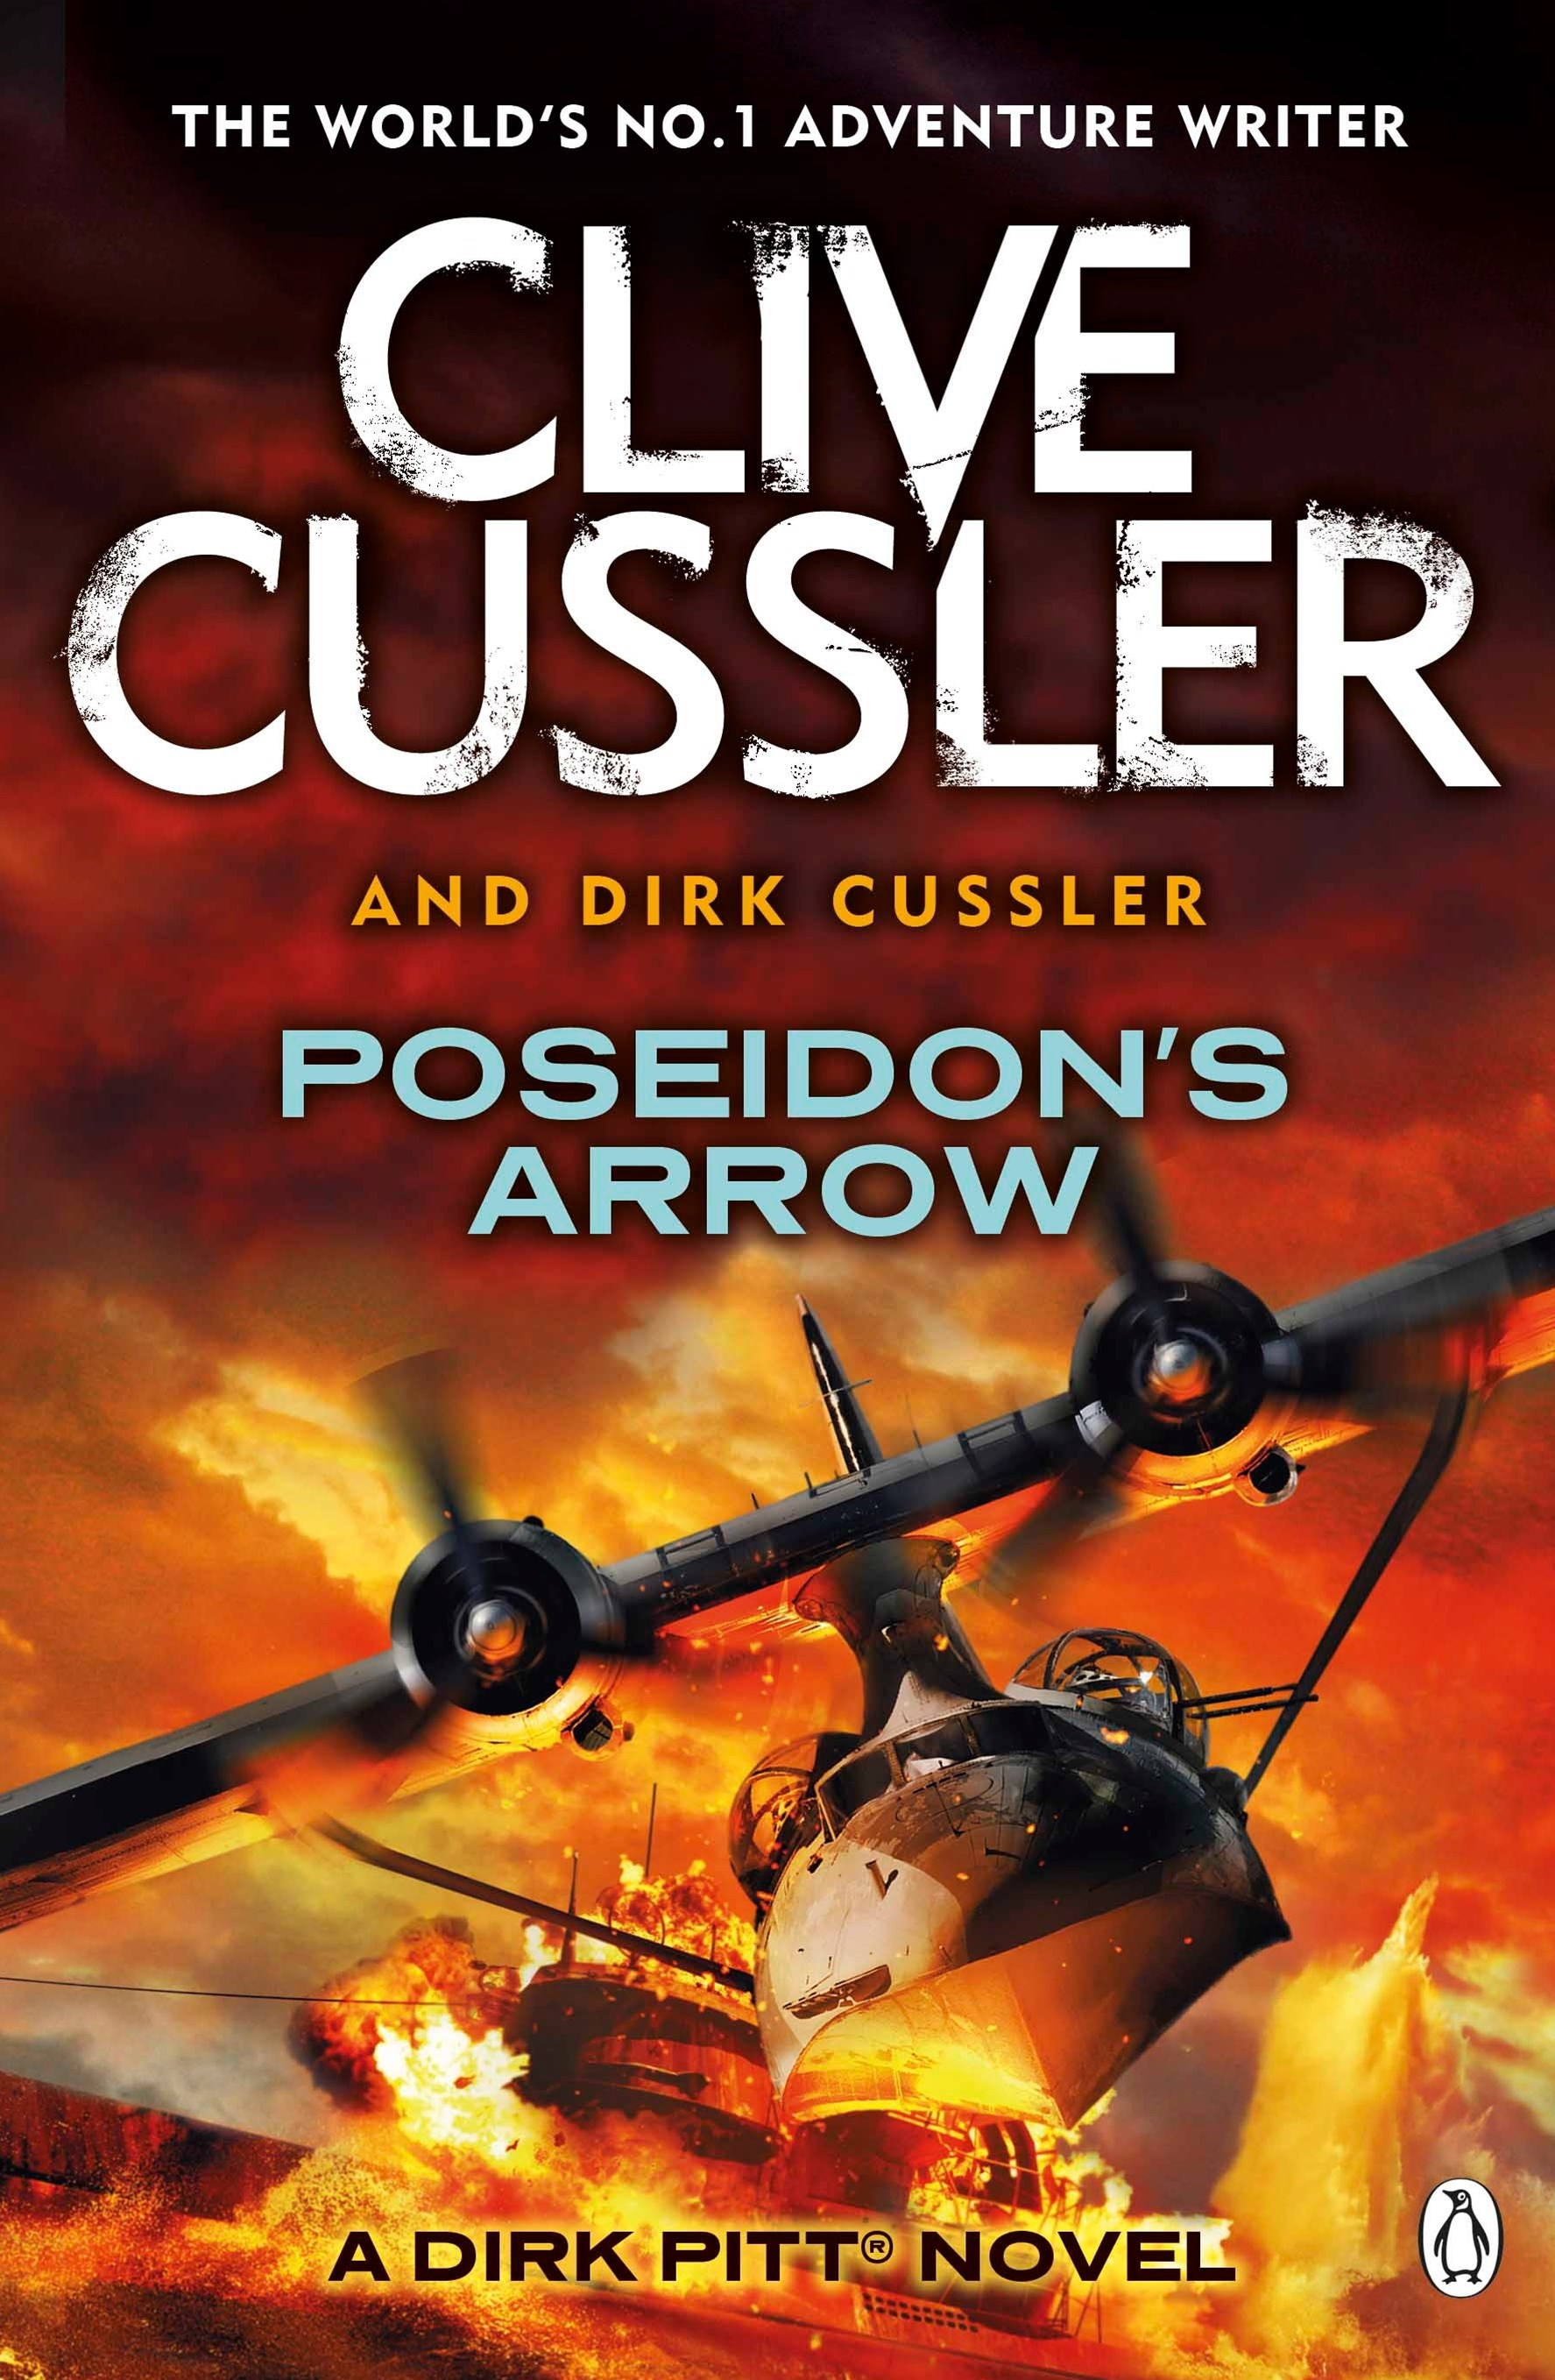 Poseidon's Arrow: A Dirk Pitt Novel